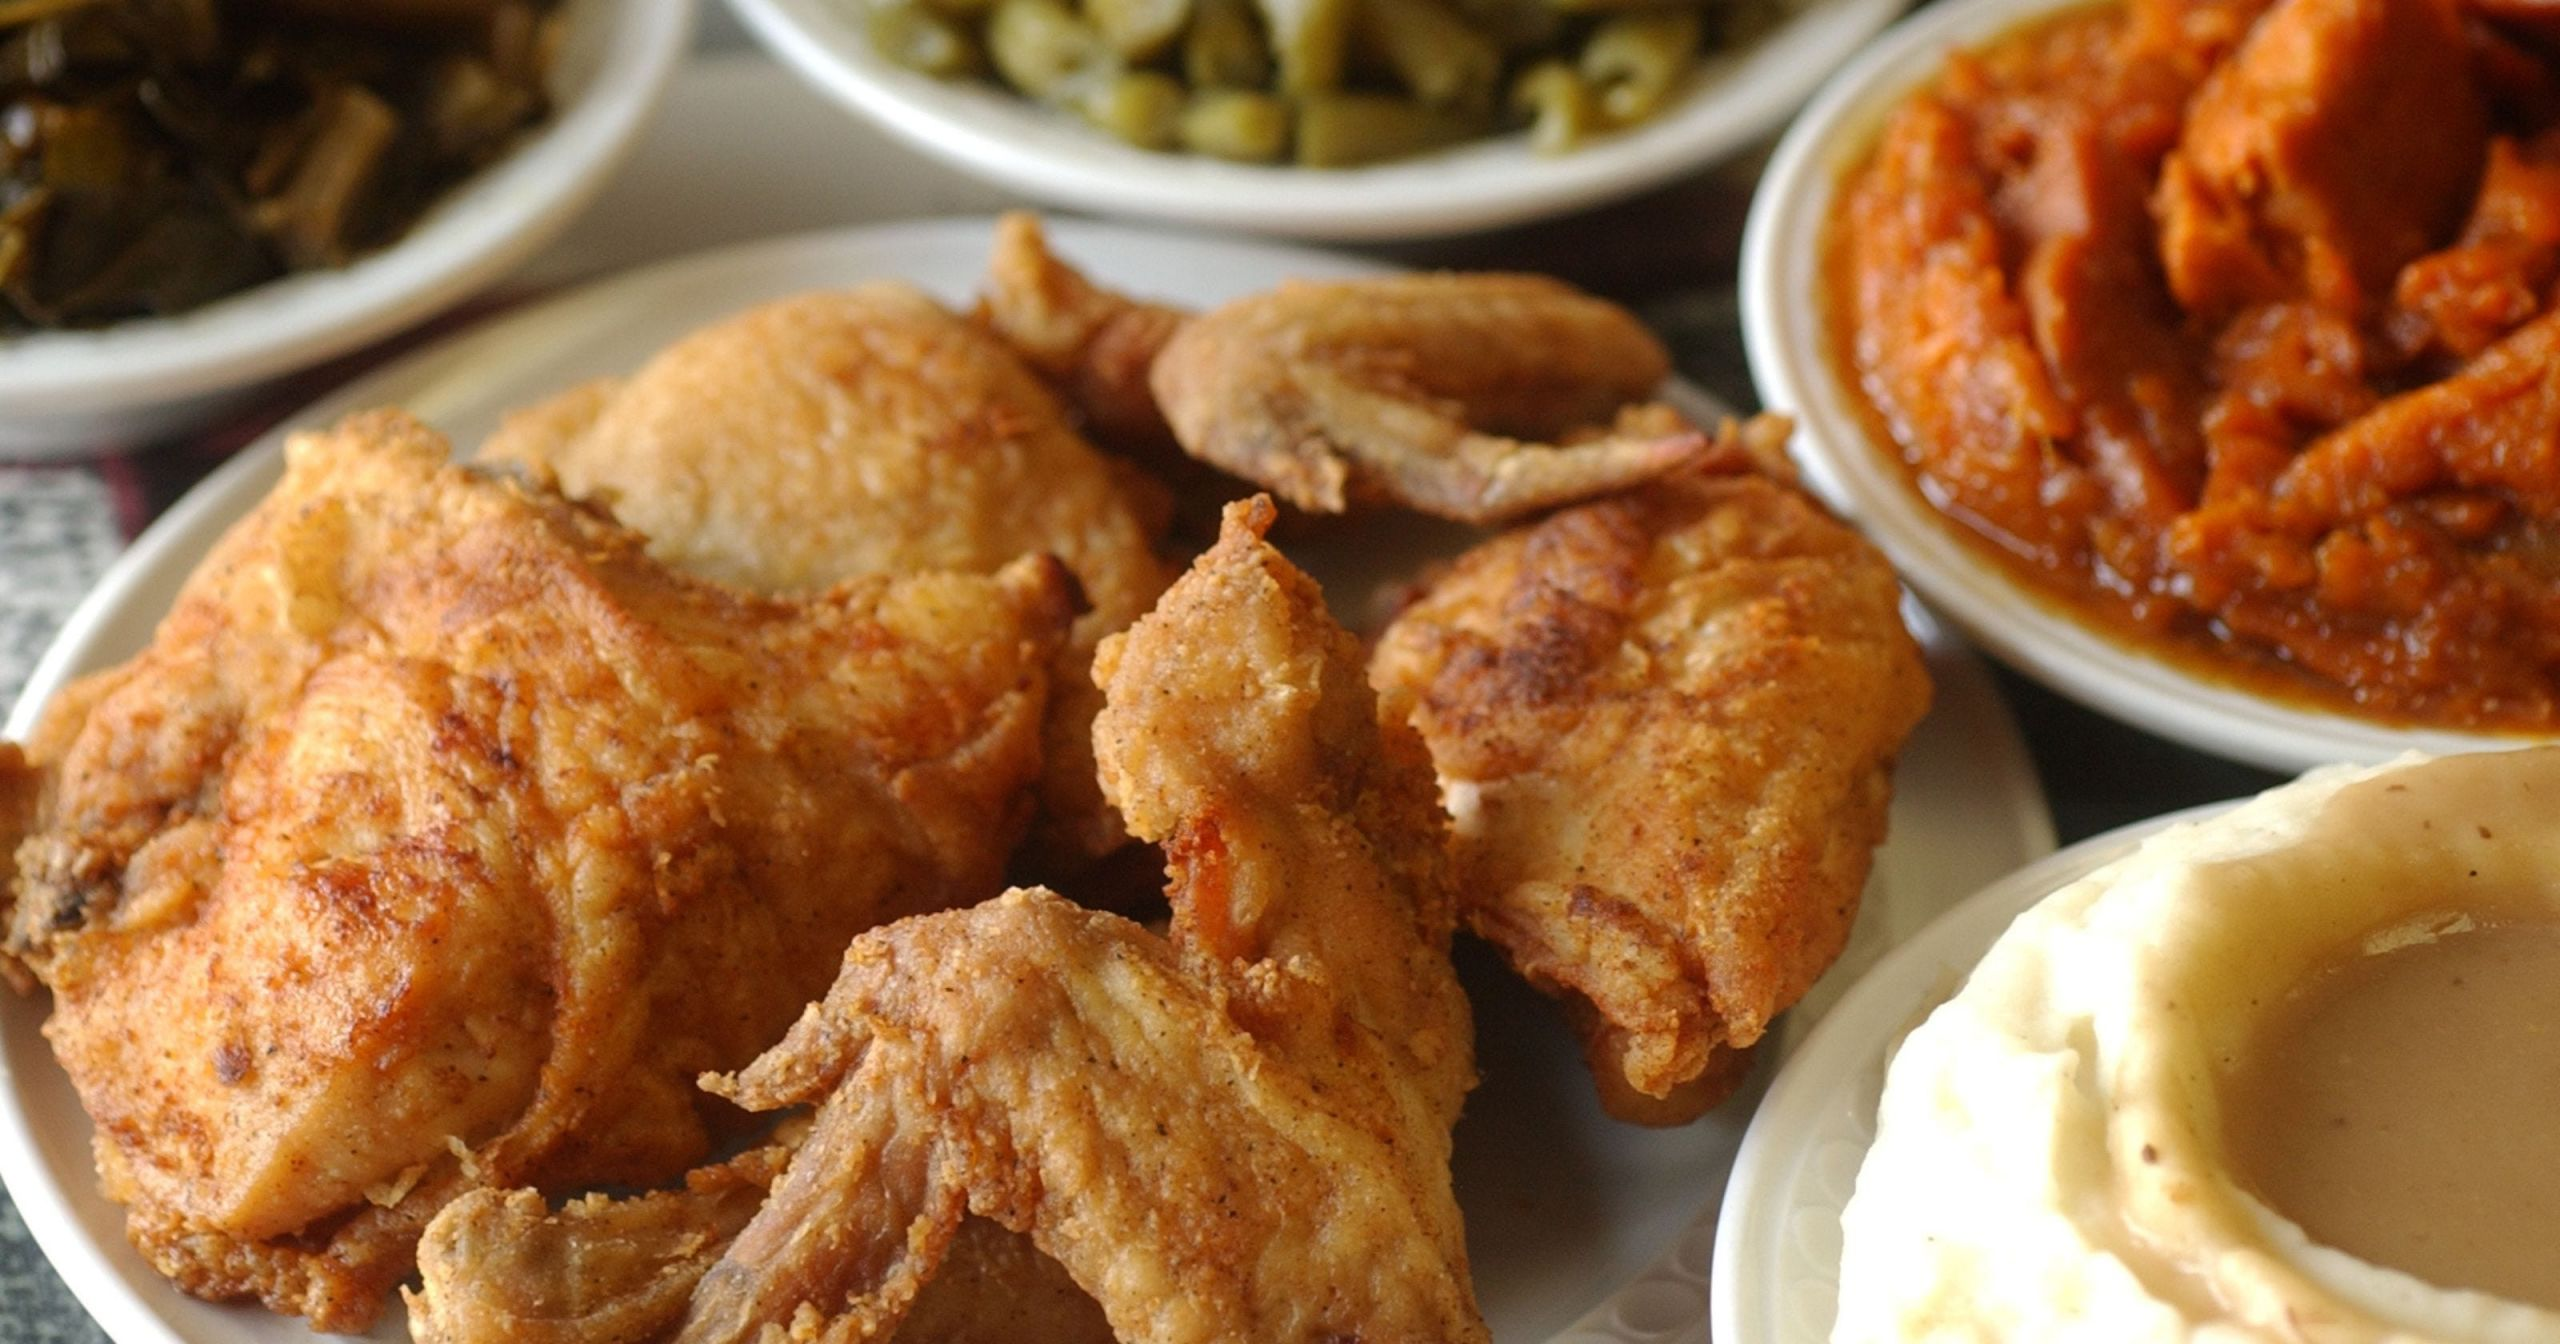 Best Fried Chicken In Indianapolis  The best fried chicken at restaurants around Indianapolis